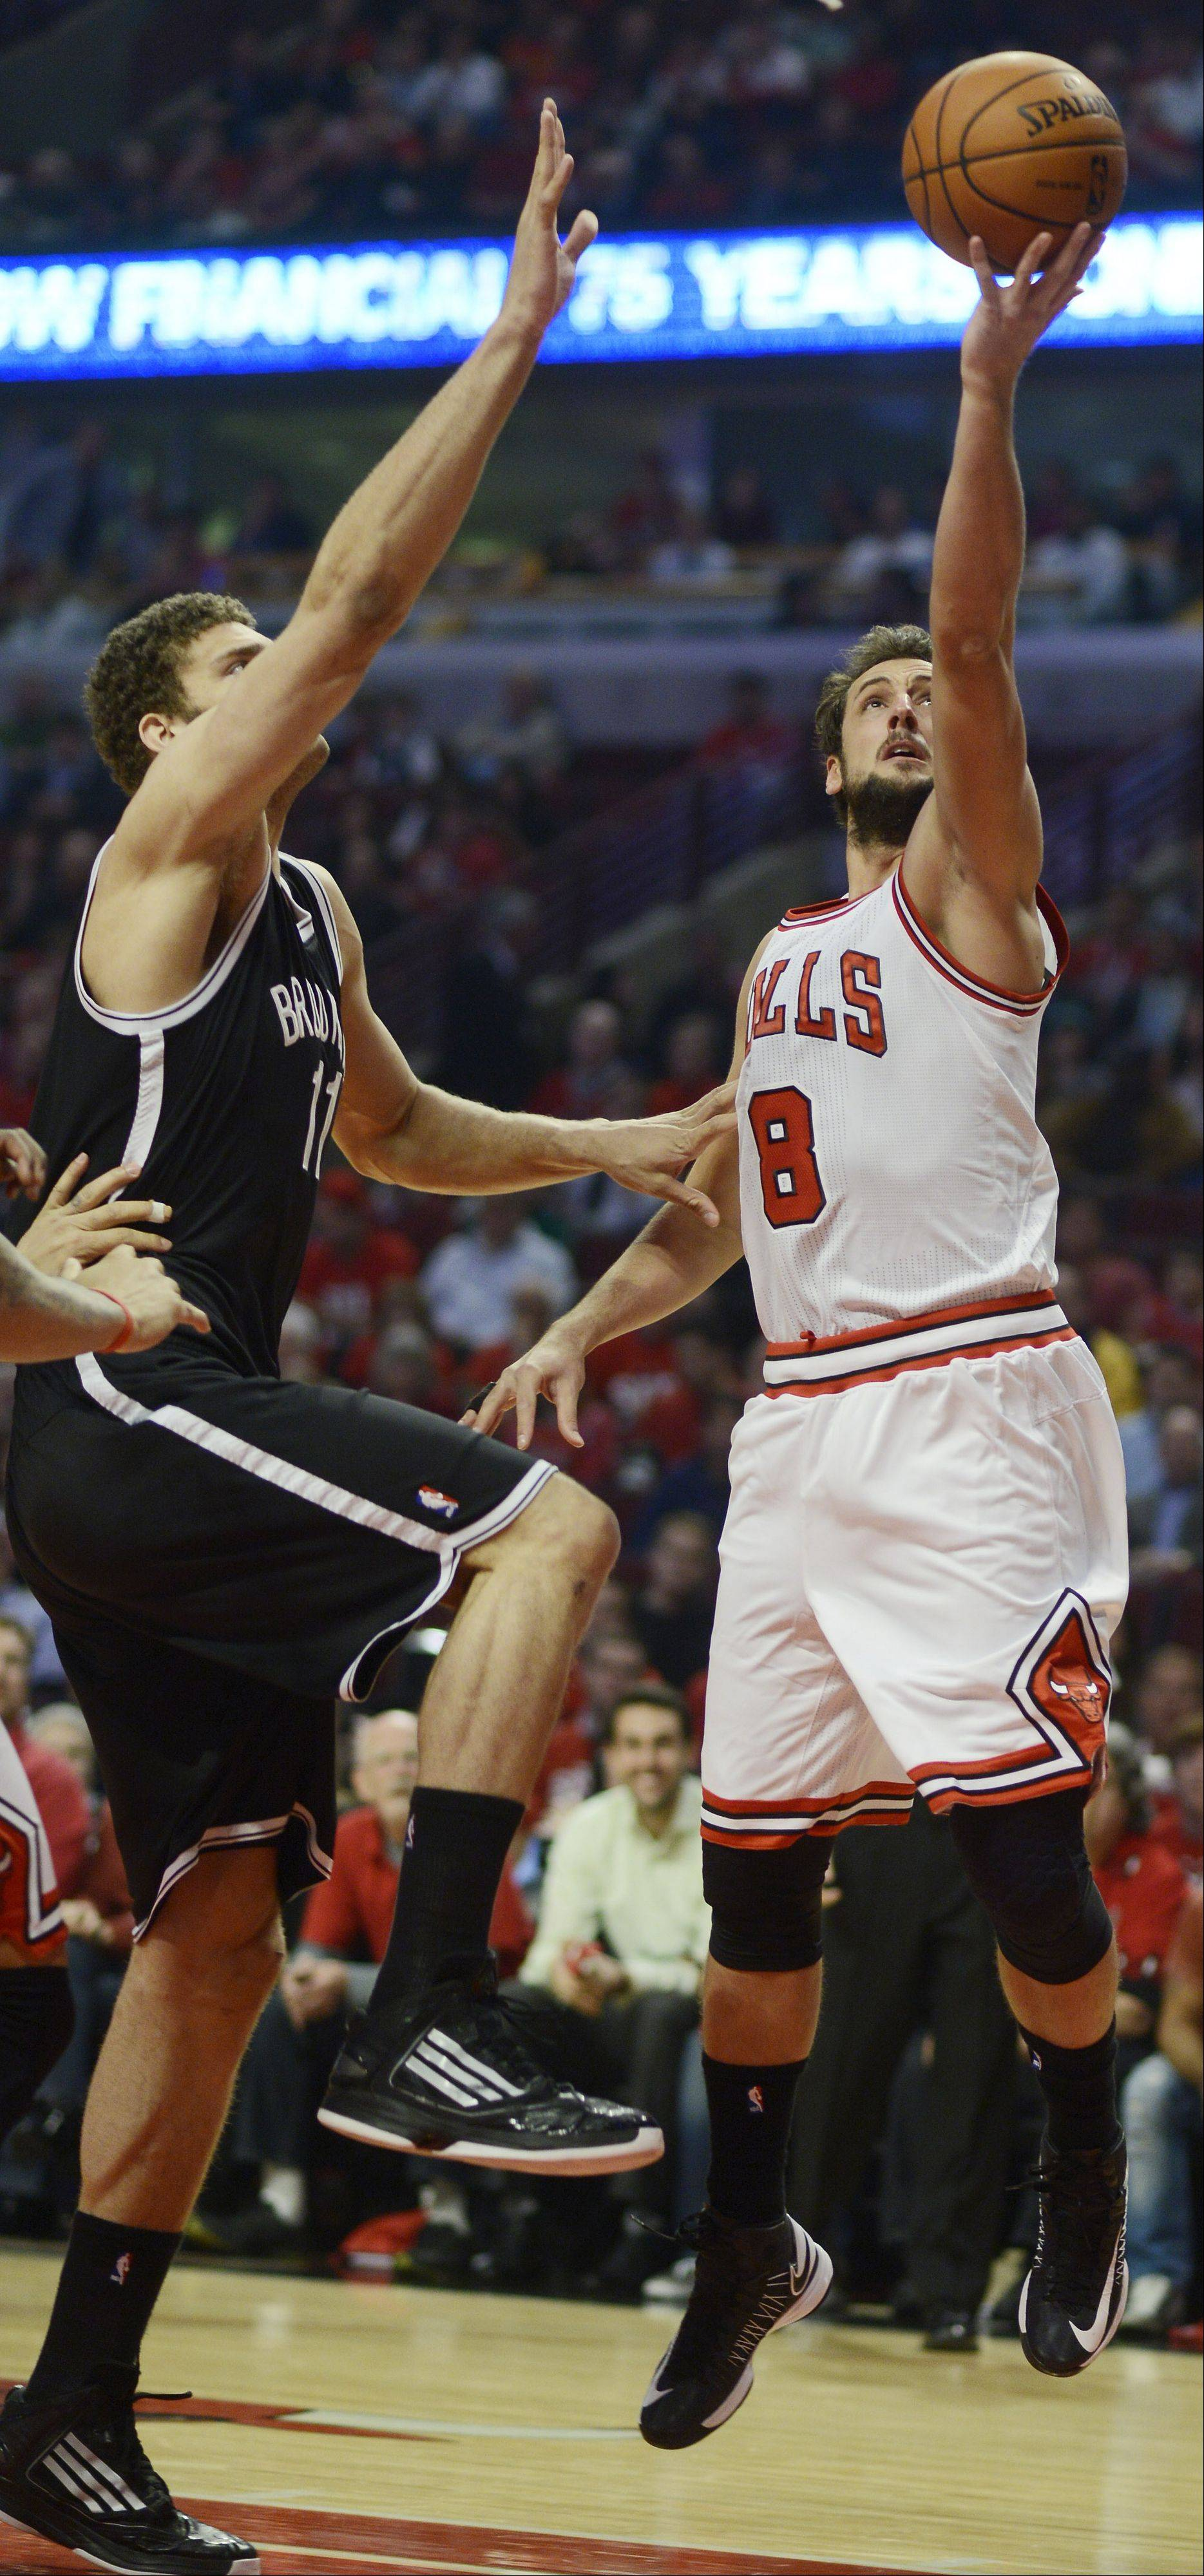 JOE LEWNARD/jlewnard@dailyherald.comMarco Belinelli of the Chicago Bulls drives to the basket for a layup against Brooklyn Nets defender Brook Lopez during the first quarter in Game 6 of the first round playoff game at the United Center in Chicago, Thursday, May 2, 2013.